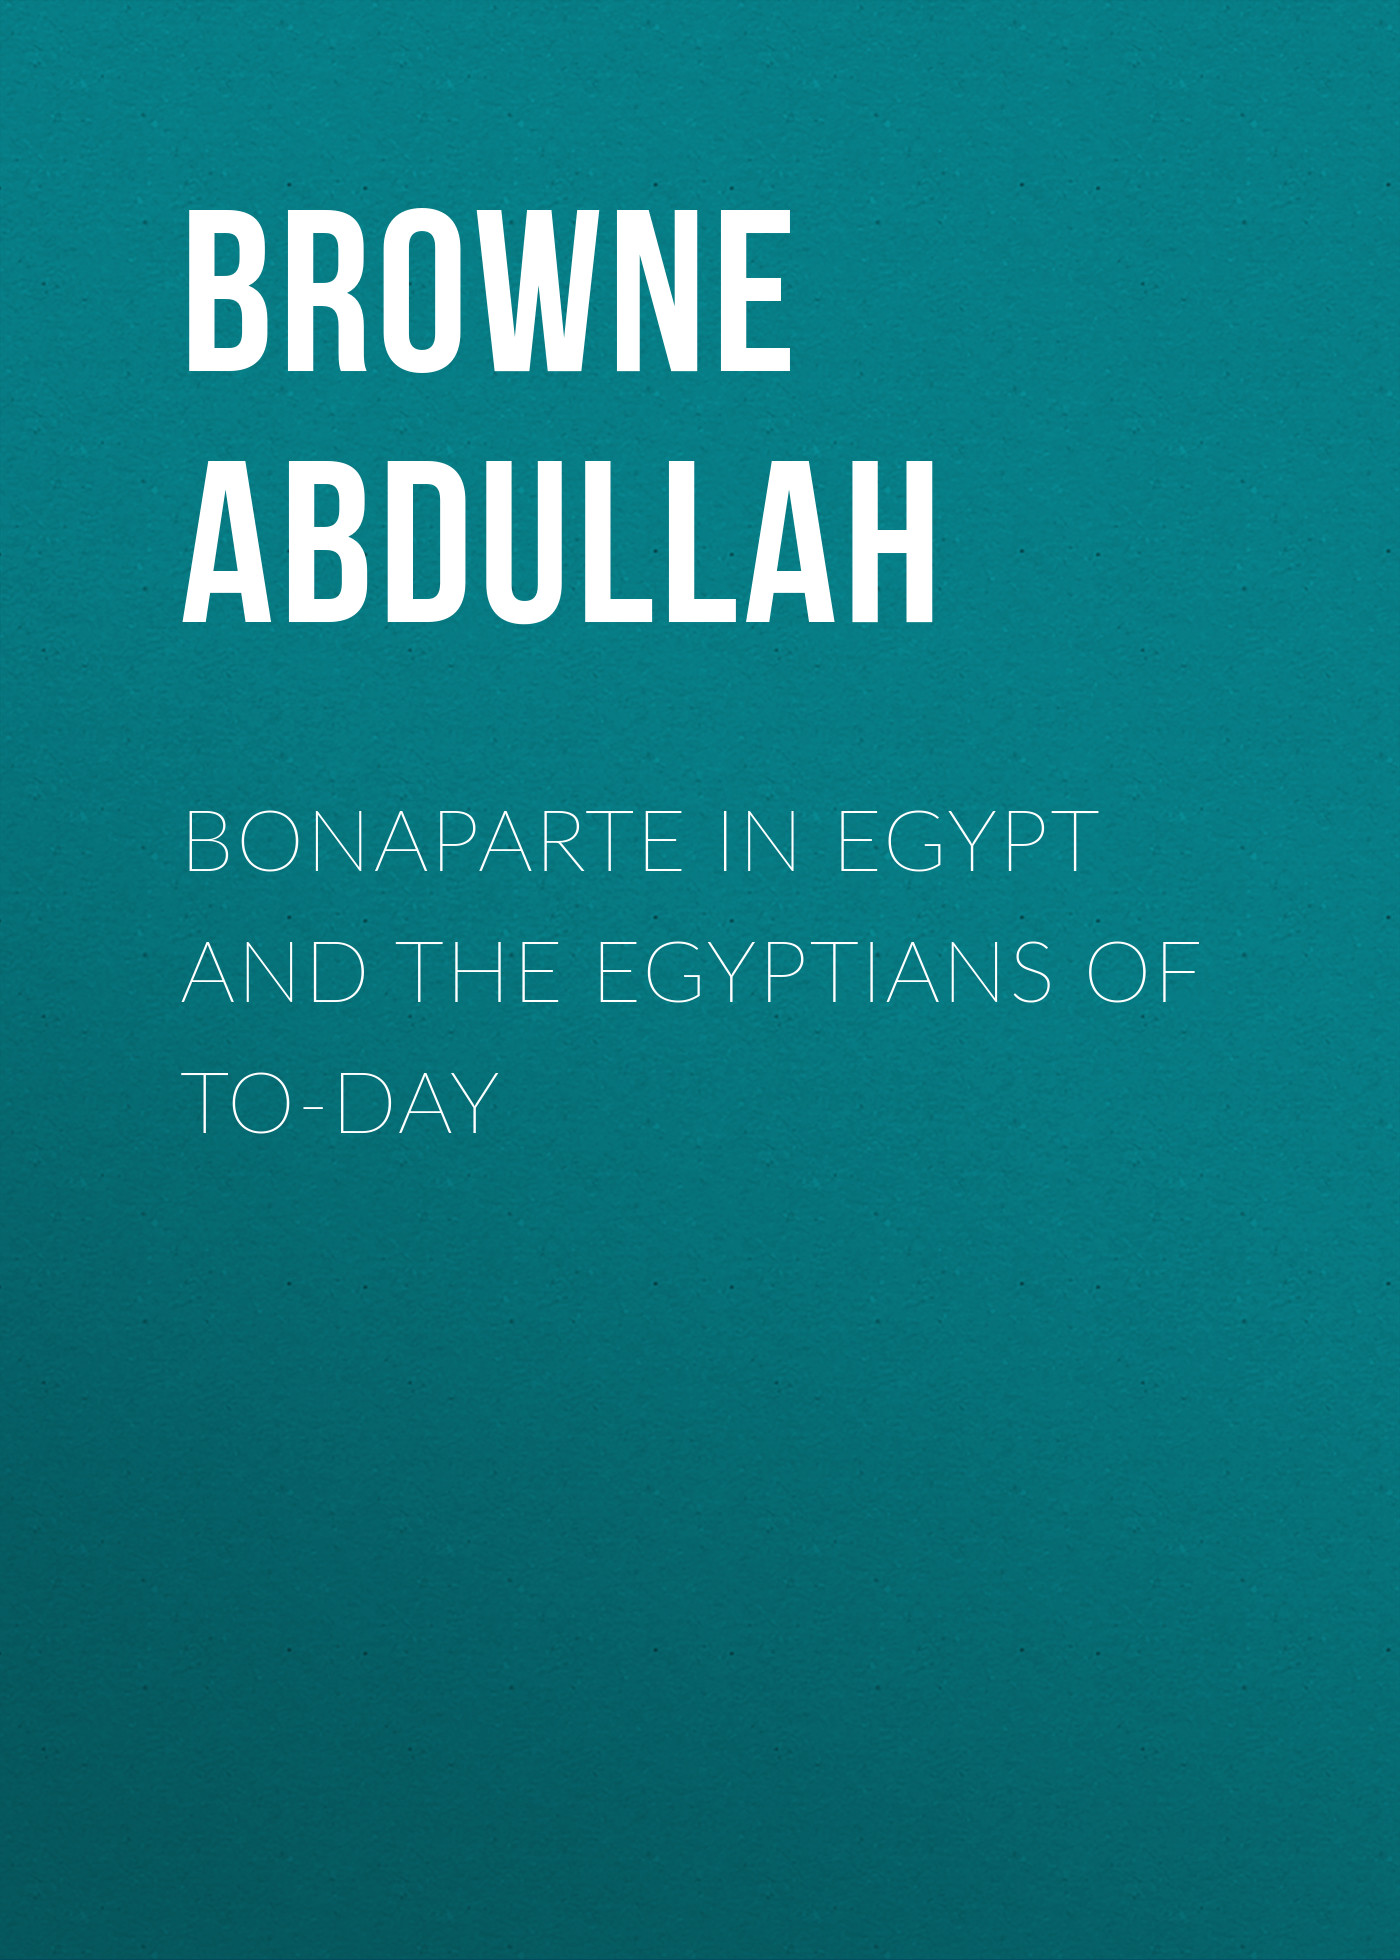 Browne Abdullah Bonaparte in Egypt and the Egyptians of To-day residues and wastes biomass in egypt